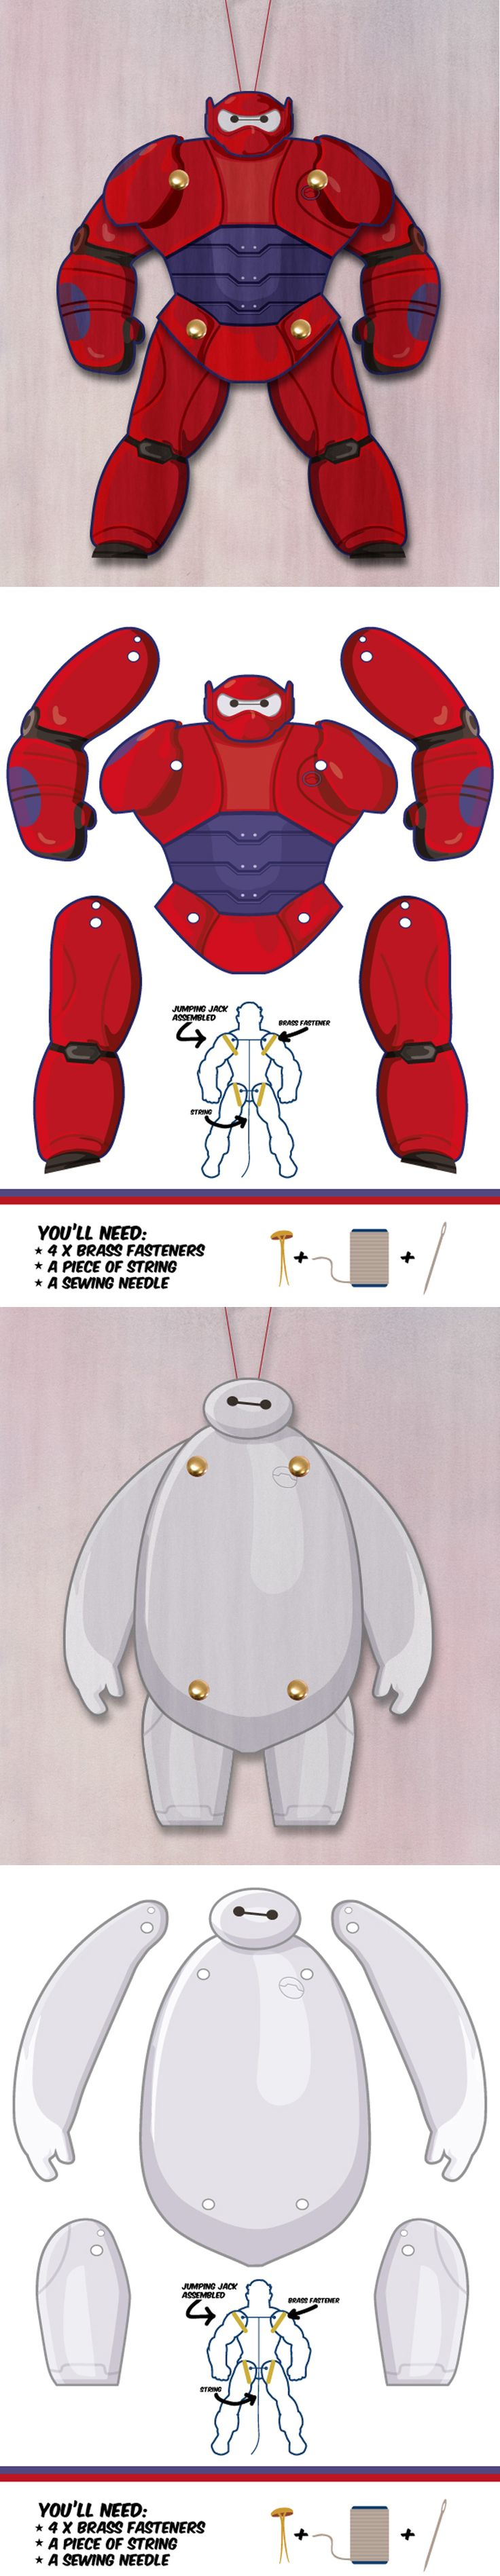 Baymax from Big hero 6 as a Jumping Jack. Dowload template free. Another cool superhero puppet.